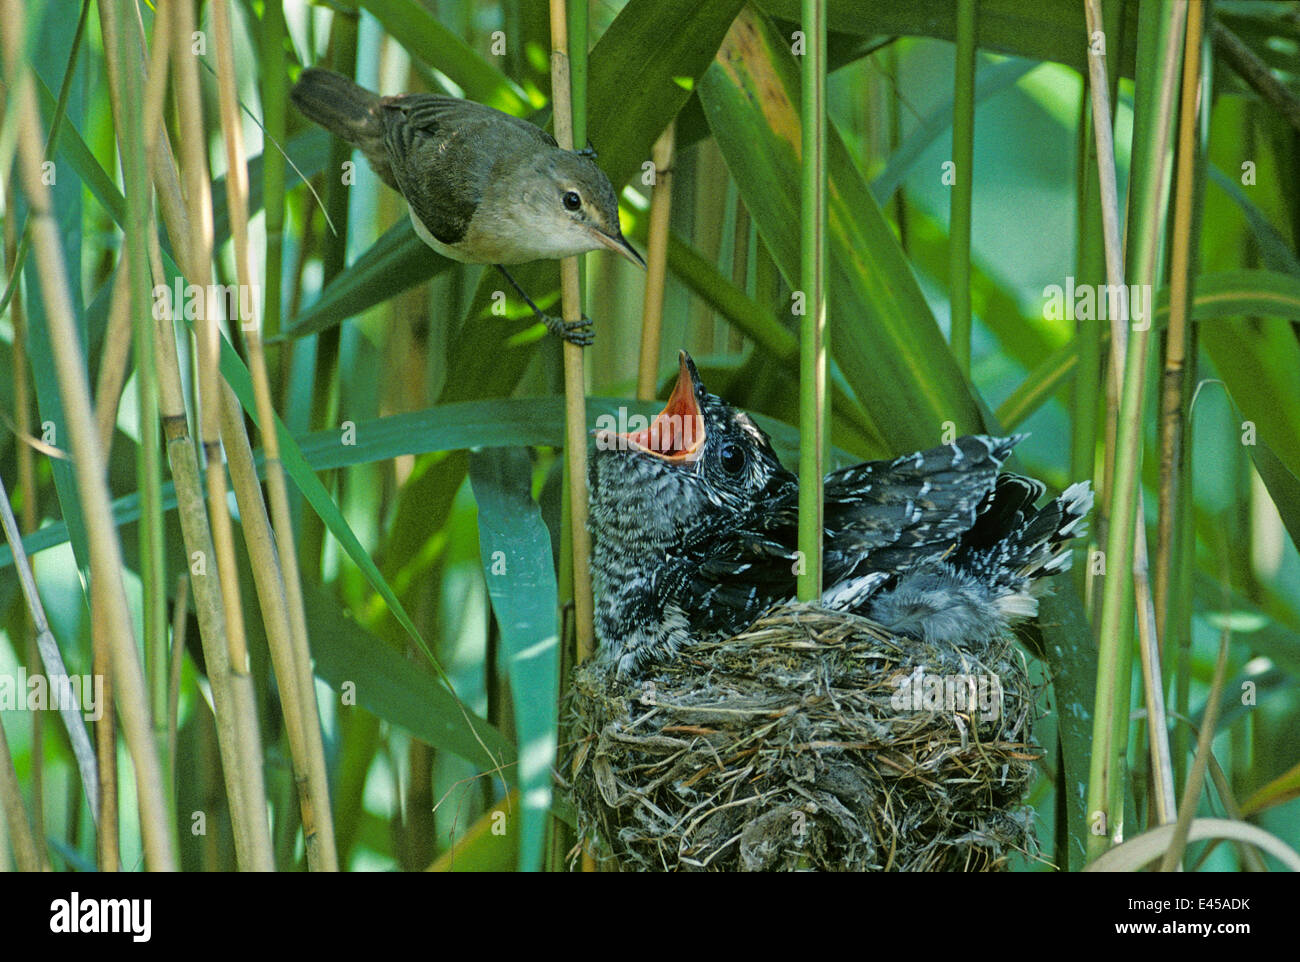 Reed warbler (Acrocephalus scirpaceus) with large fledgling Cuckoo (Cuculus canorus) in it's nest, Essex, UK - Stock Image